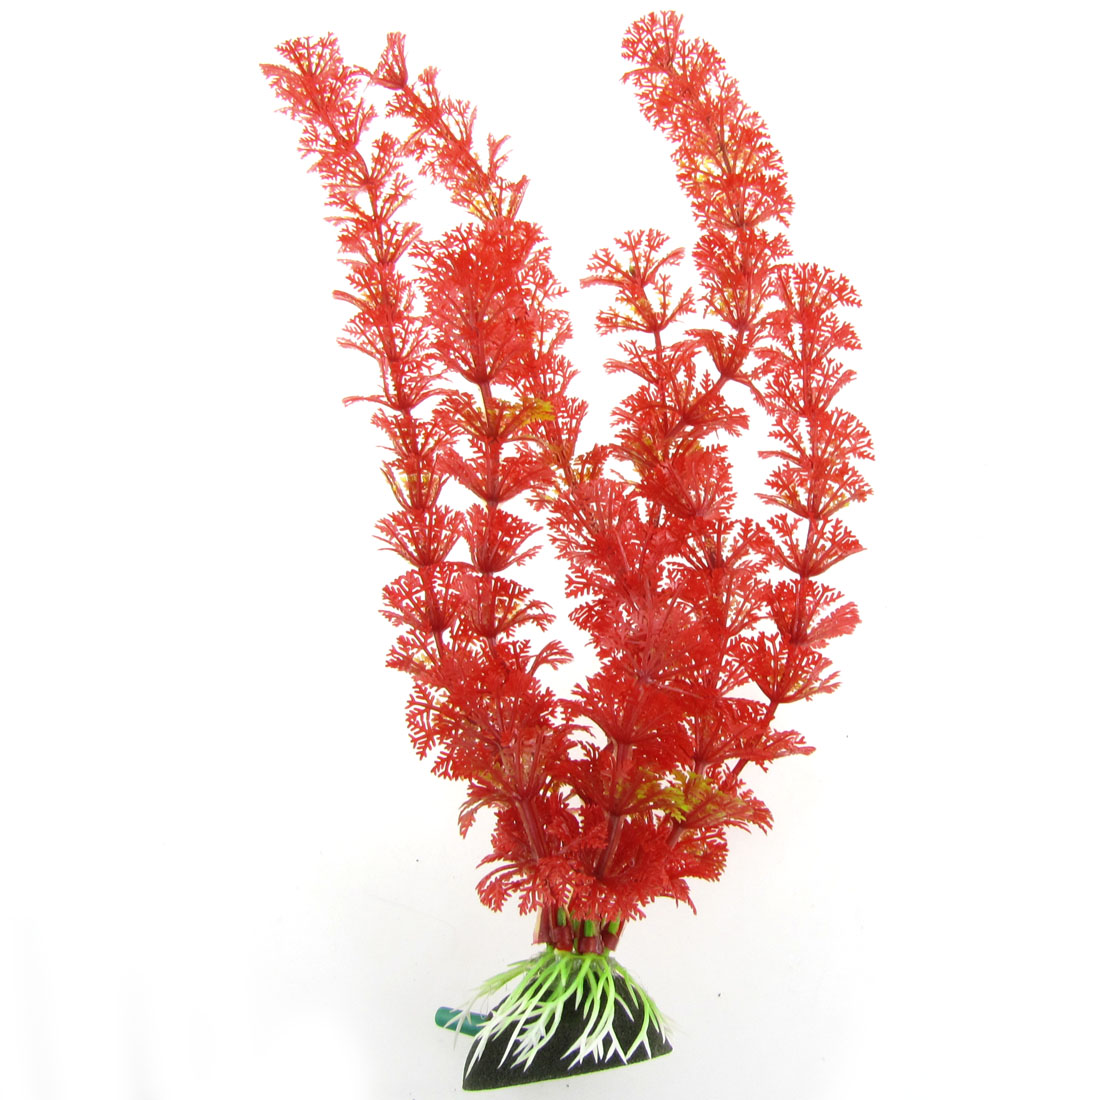 Air Stone Base Red Leaves Aquarium Fish Tank Plastic Plant Decoration 11.8""